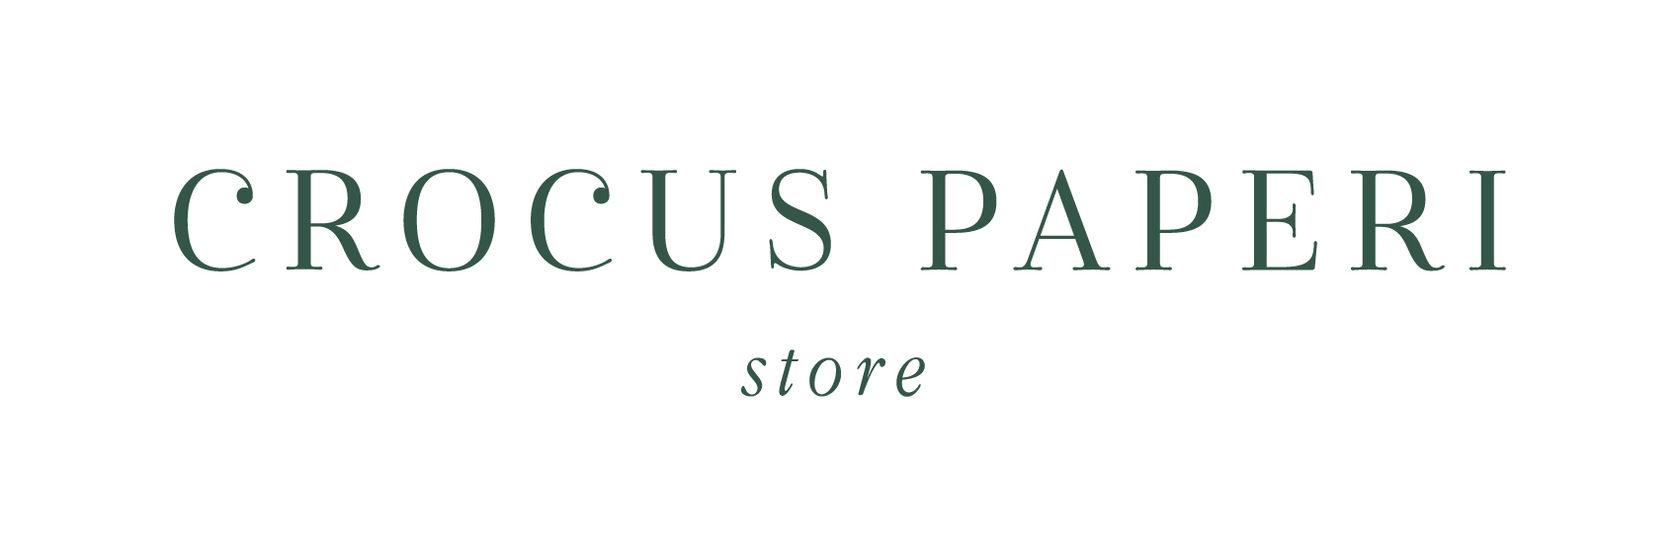 Crocus Paperi Shop: ready-made colored and textured envelopes, wax seals and wedding stationery